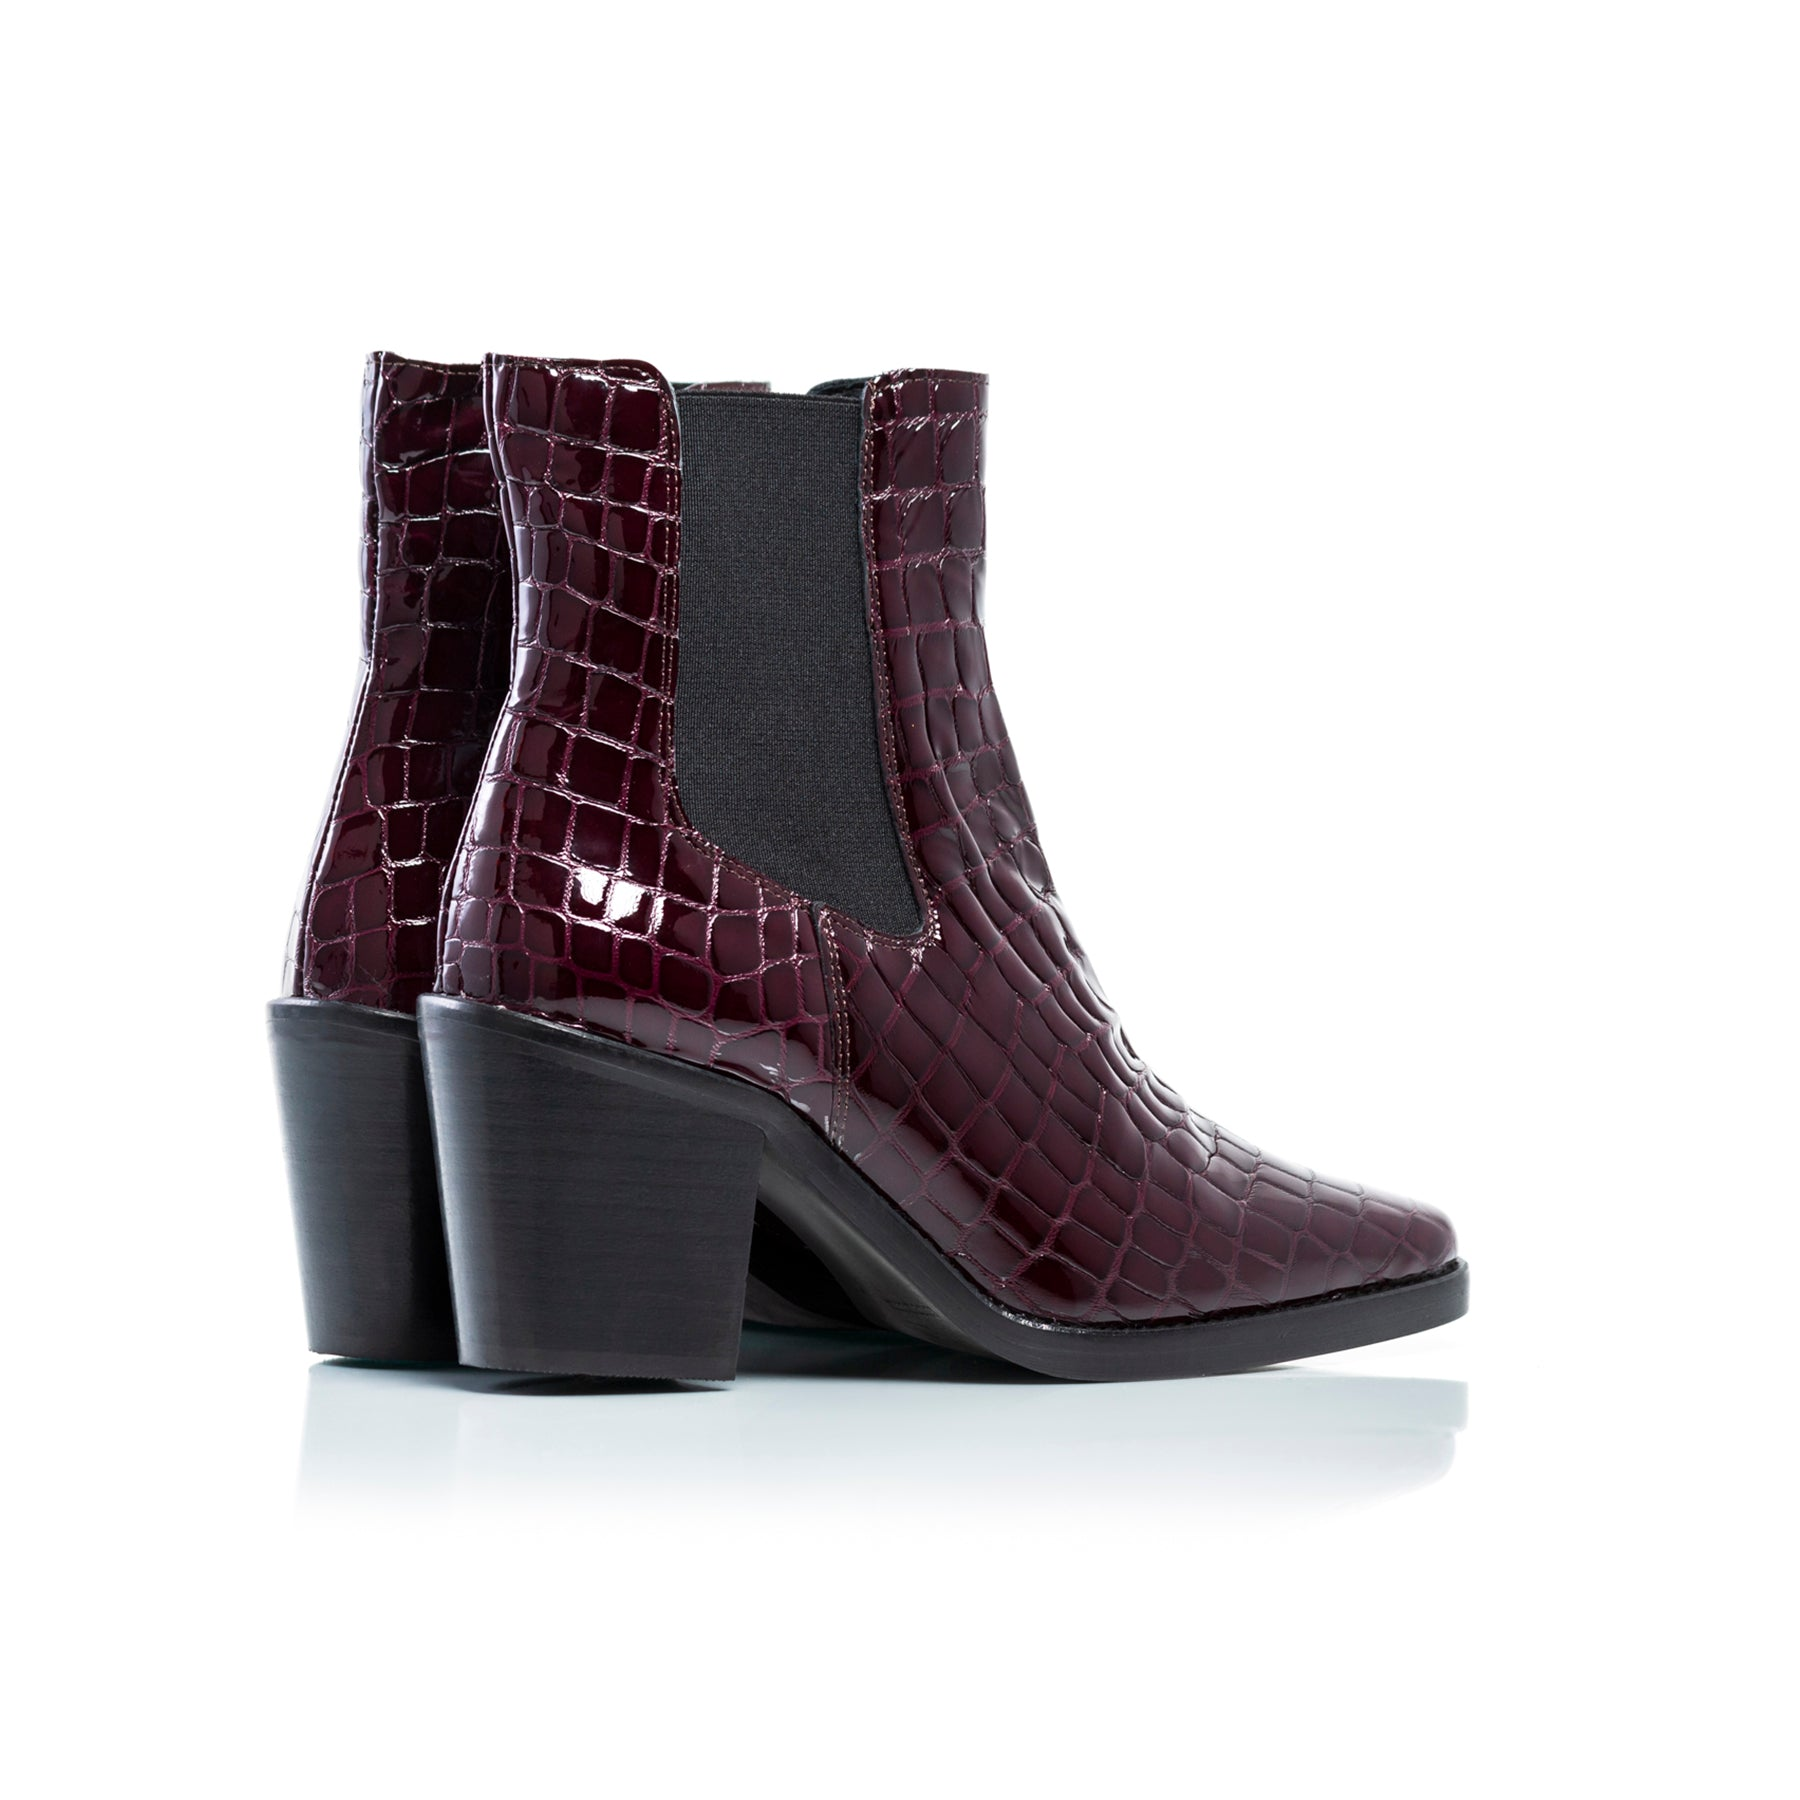 Kentucky Bordeau Croco Ankle Boots